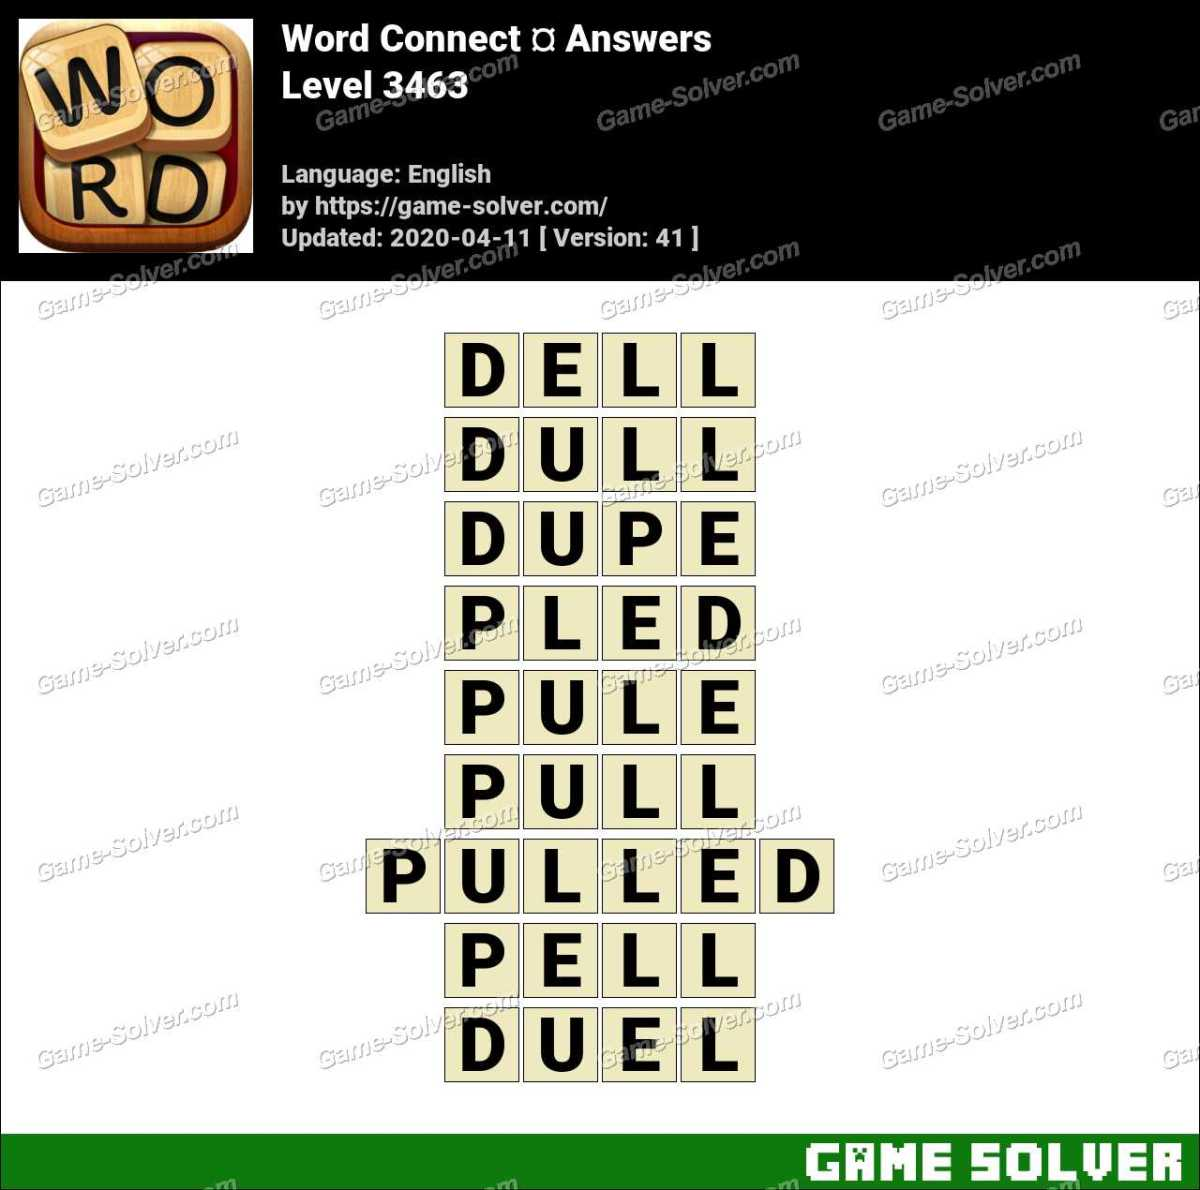 Word Connect Level 3463 Answers